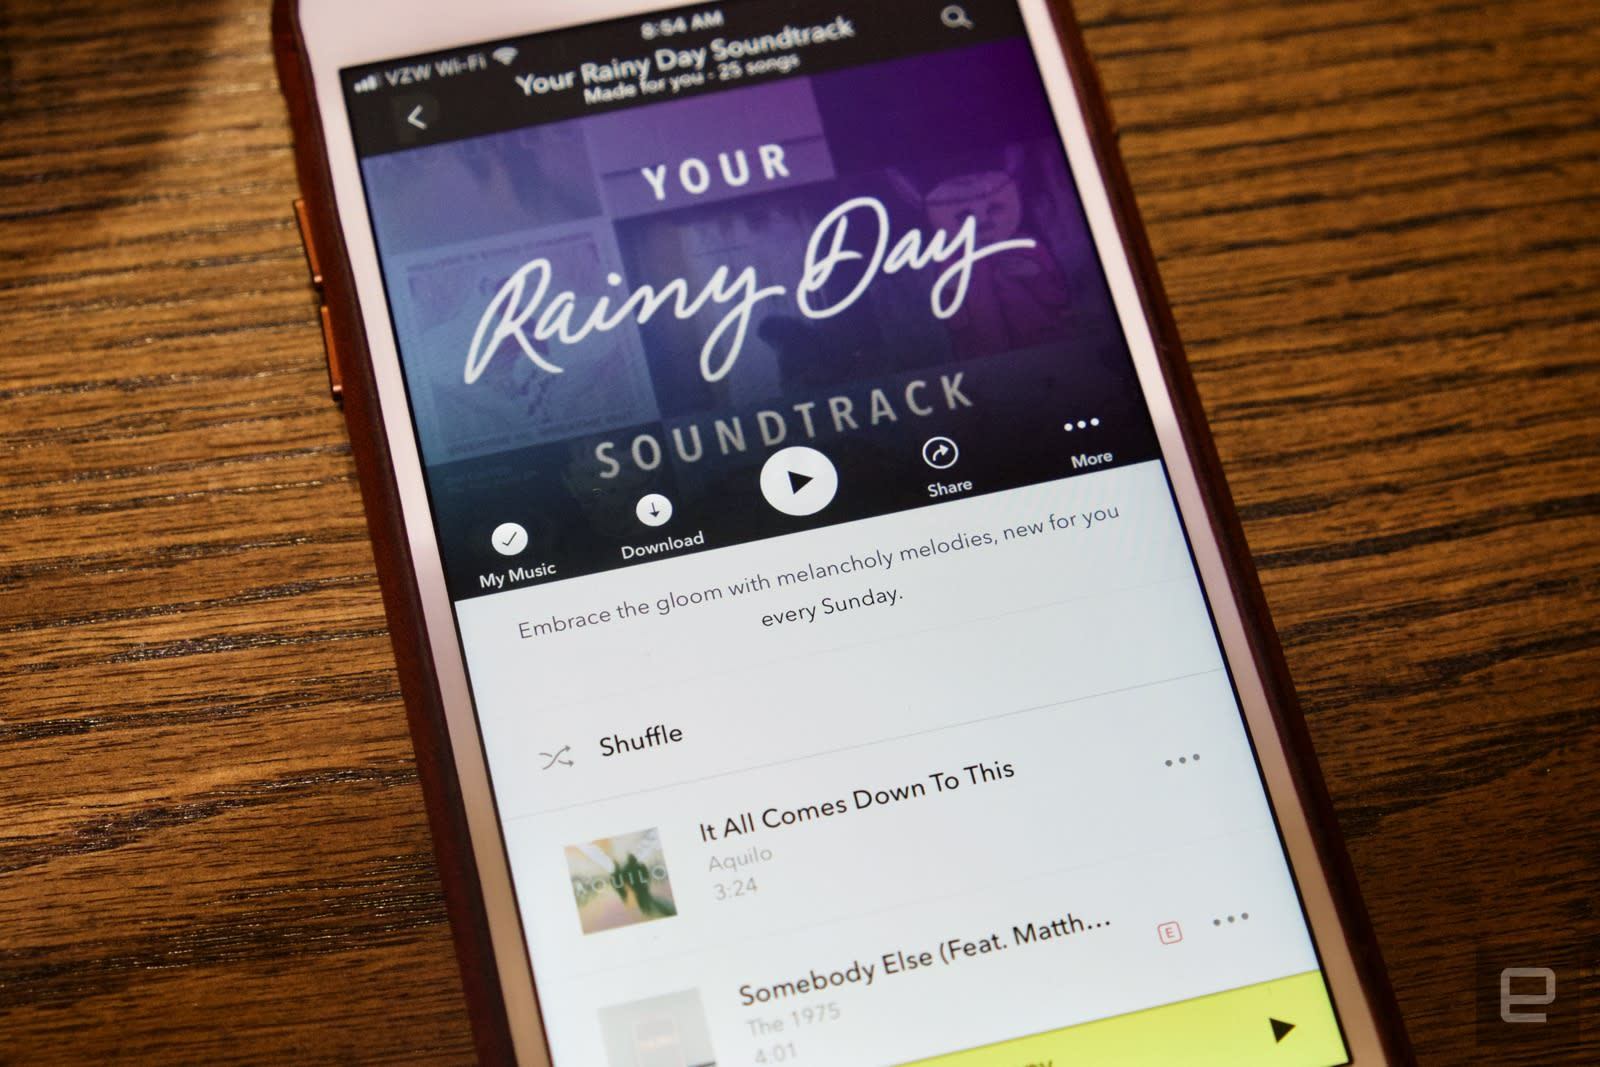 Pandora's personalized playlists are available to all premium